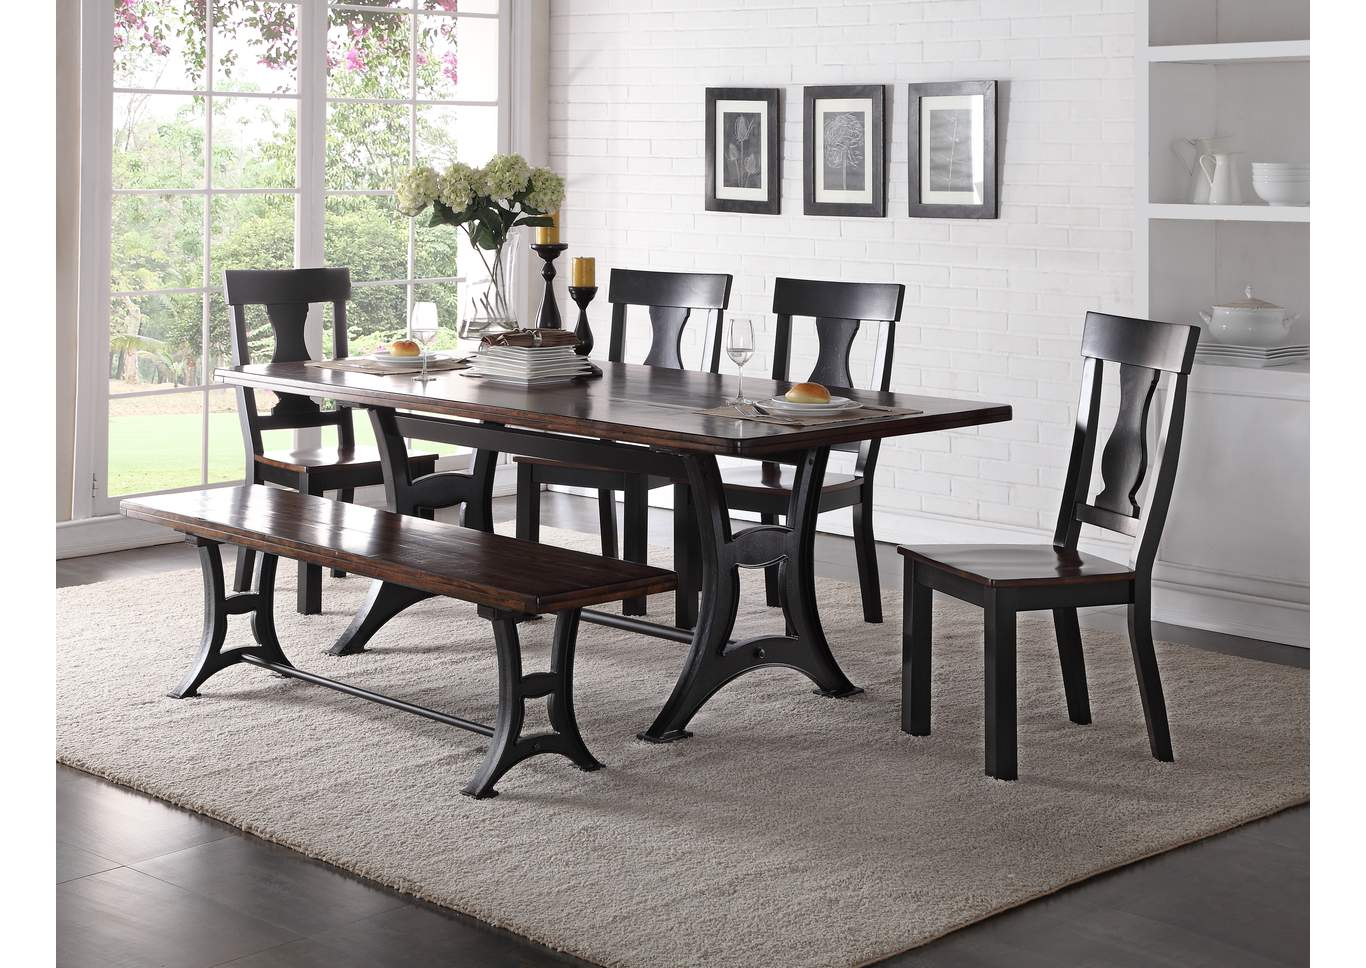 Astor Rectangular Dining Table w/4 Side Chair & Dining Bench,Crown Mark